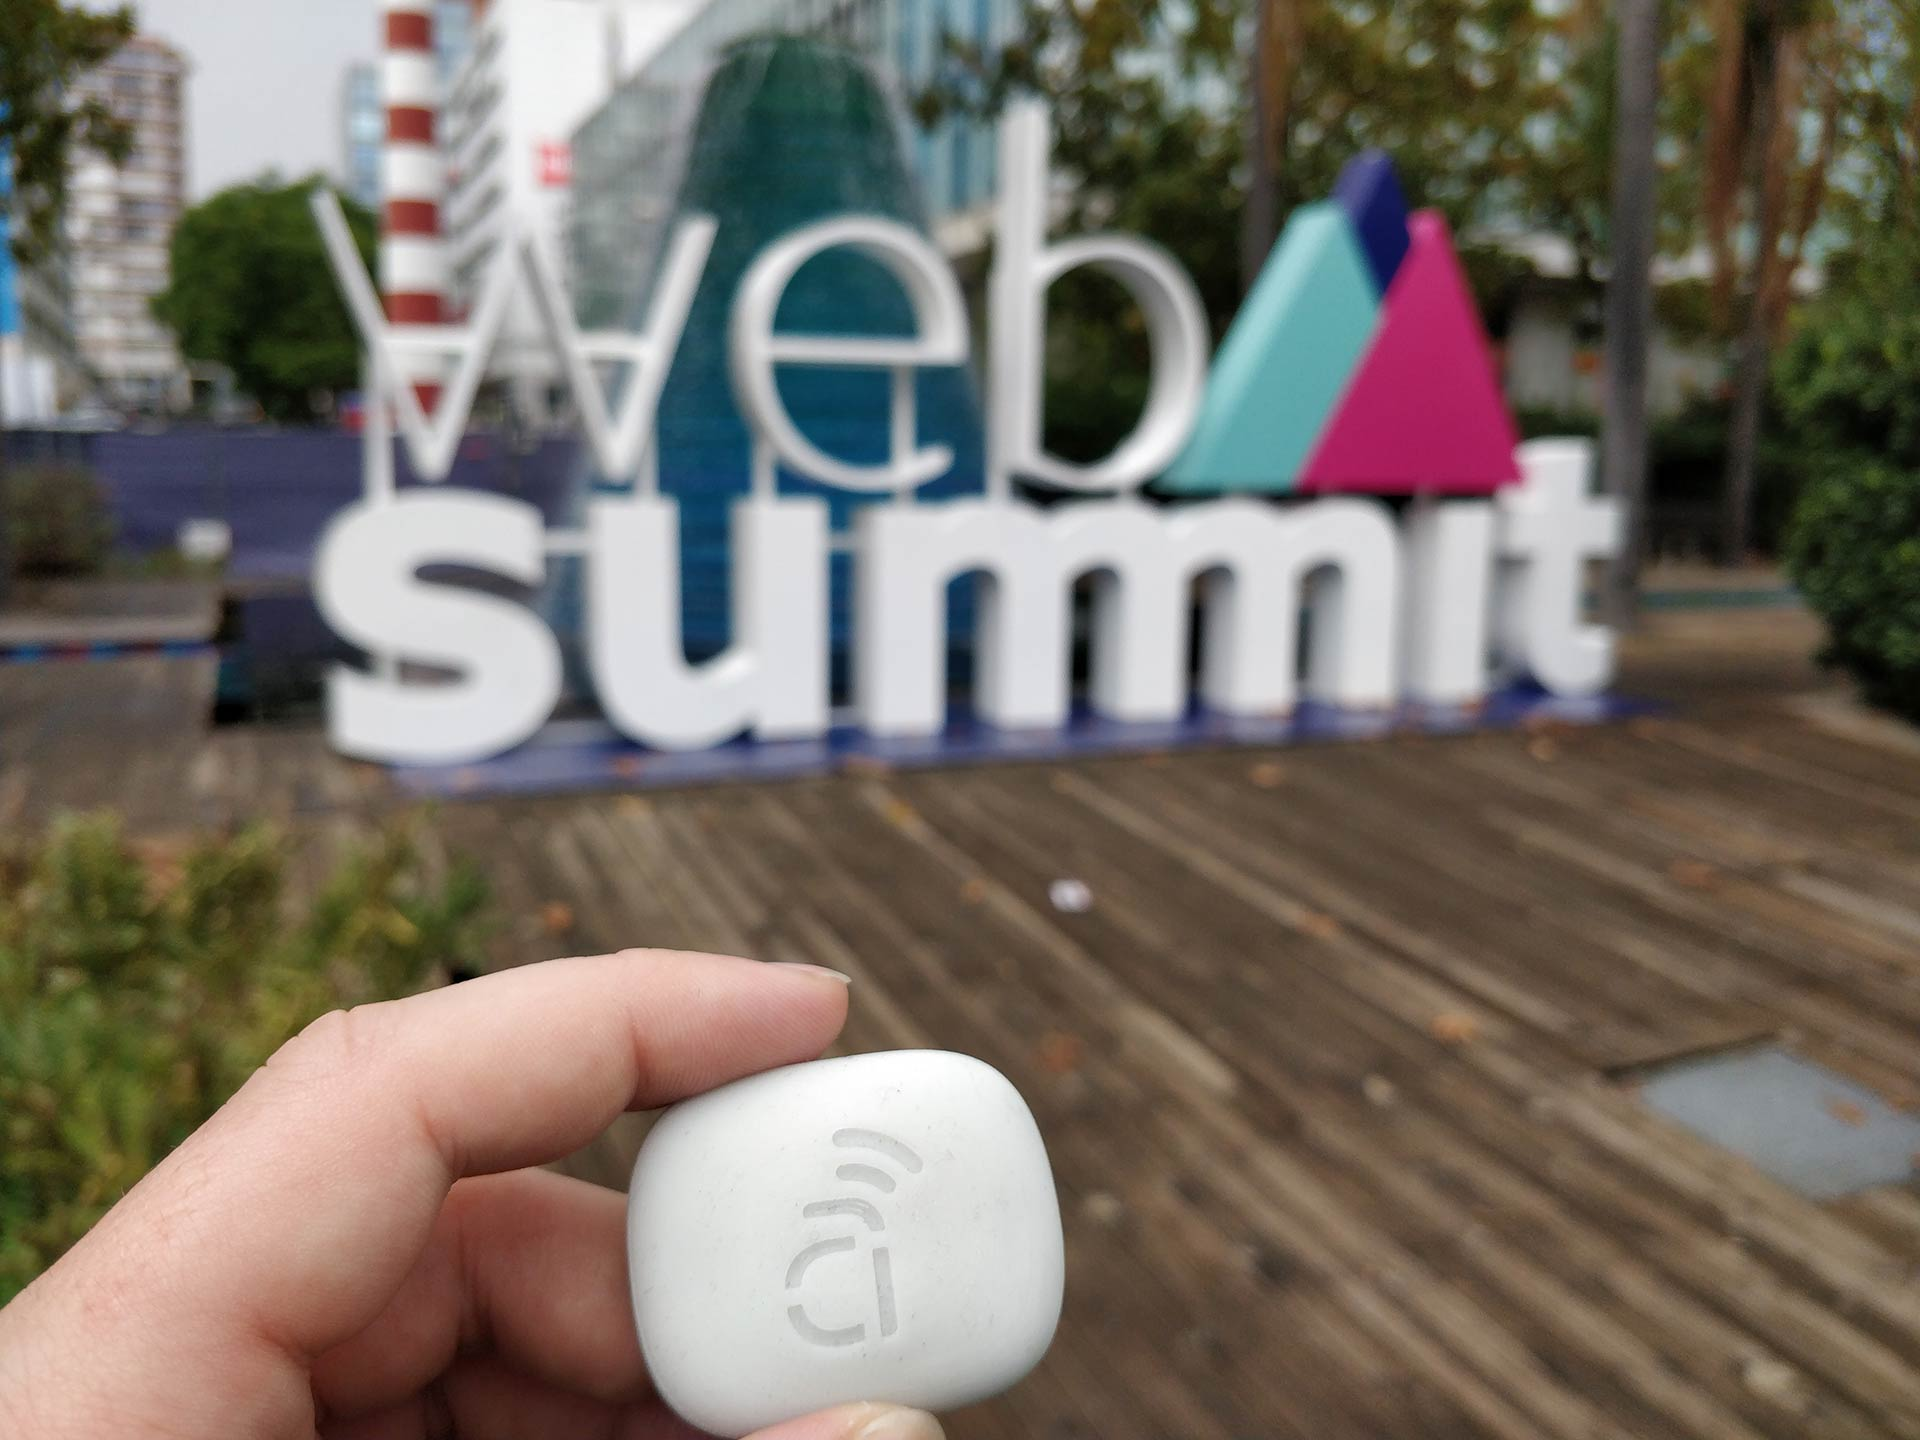 Anything Connected at Web Summit 2018 Lisbon